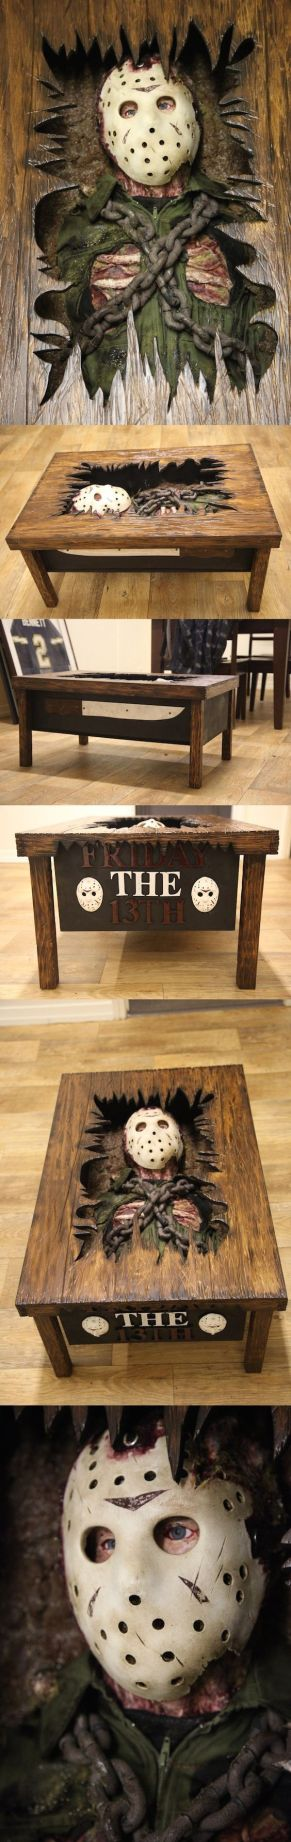 This Friday The 13th Coffee Table Features Jason's Grave Escape This Friday the 13th Coffee Table is a table and prop replica in one. This one of a kind collectible features Jason in his iconic mask as he's escaping his grave. Talk about a conversation piece!: